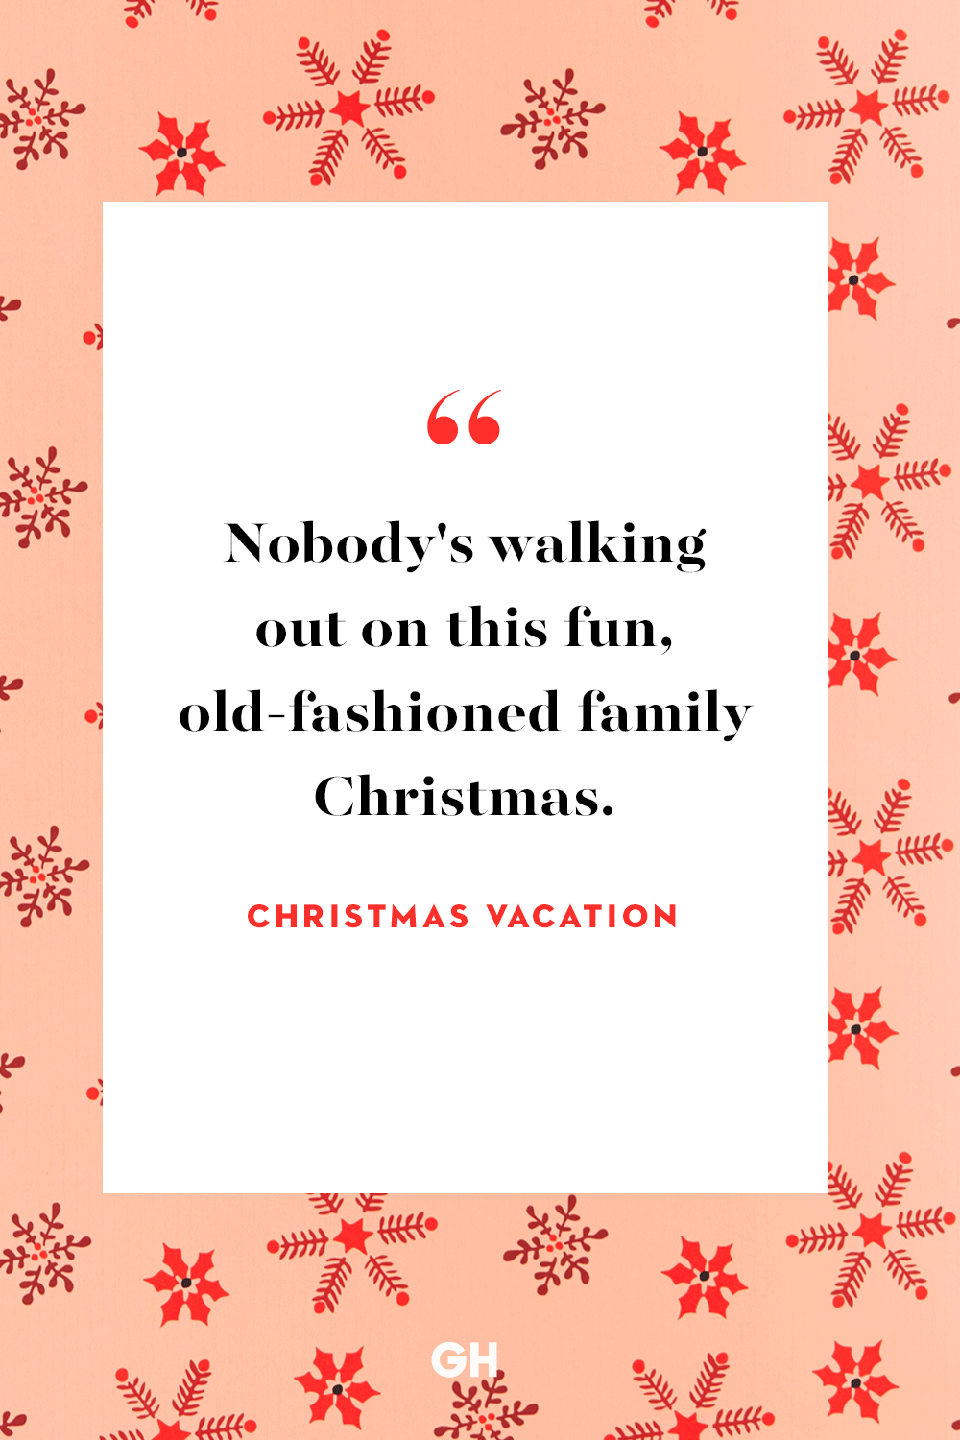 "<p>Nobody's walking out on this fun, old-fashioned family Christmas.</p><p><strong>RELATED:</strong> <a href=""https://www.goodhousekeeping.com/holidays/christmas-ideas/g1233/christmas-quotes/"" rel=""nofollow noopener"" target=""_blank"" data-ylk=""slk:50 Festive Christmas Quotes That Will Get You in the Holiday Spirit"" class=""link rapid-noclick-resp"">50 Festive Christmas Quotes That Will Get You in the Holiday Spirit</a></p>"